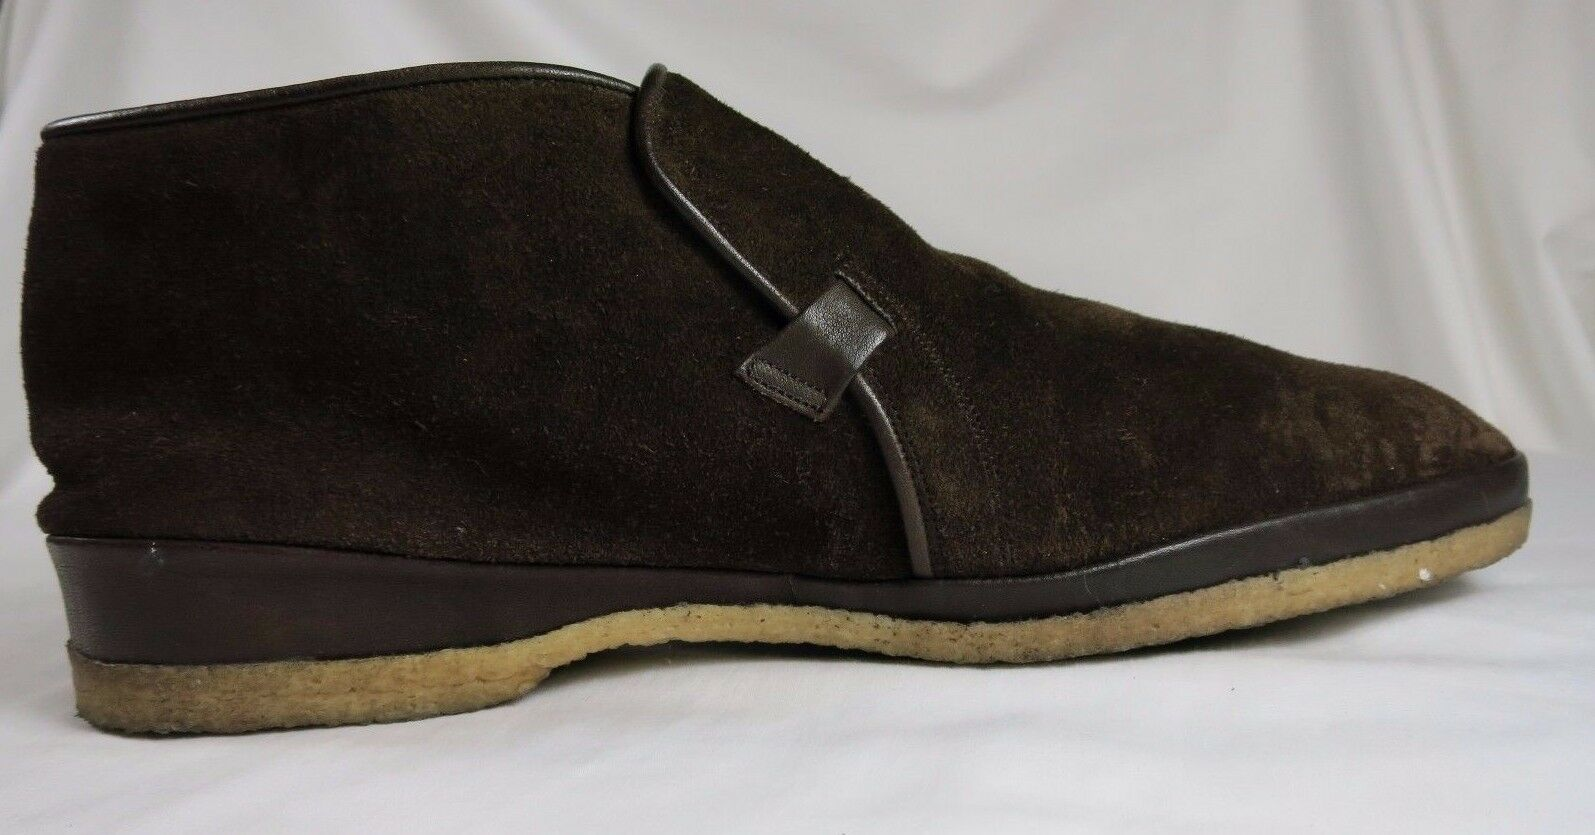 Bruno Magli Dark Brown Suede Slip On Chukka Chukka Chukka Boots DESIO 8.5 Medium 40106e